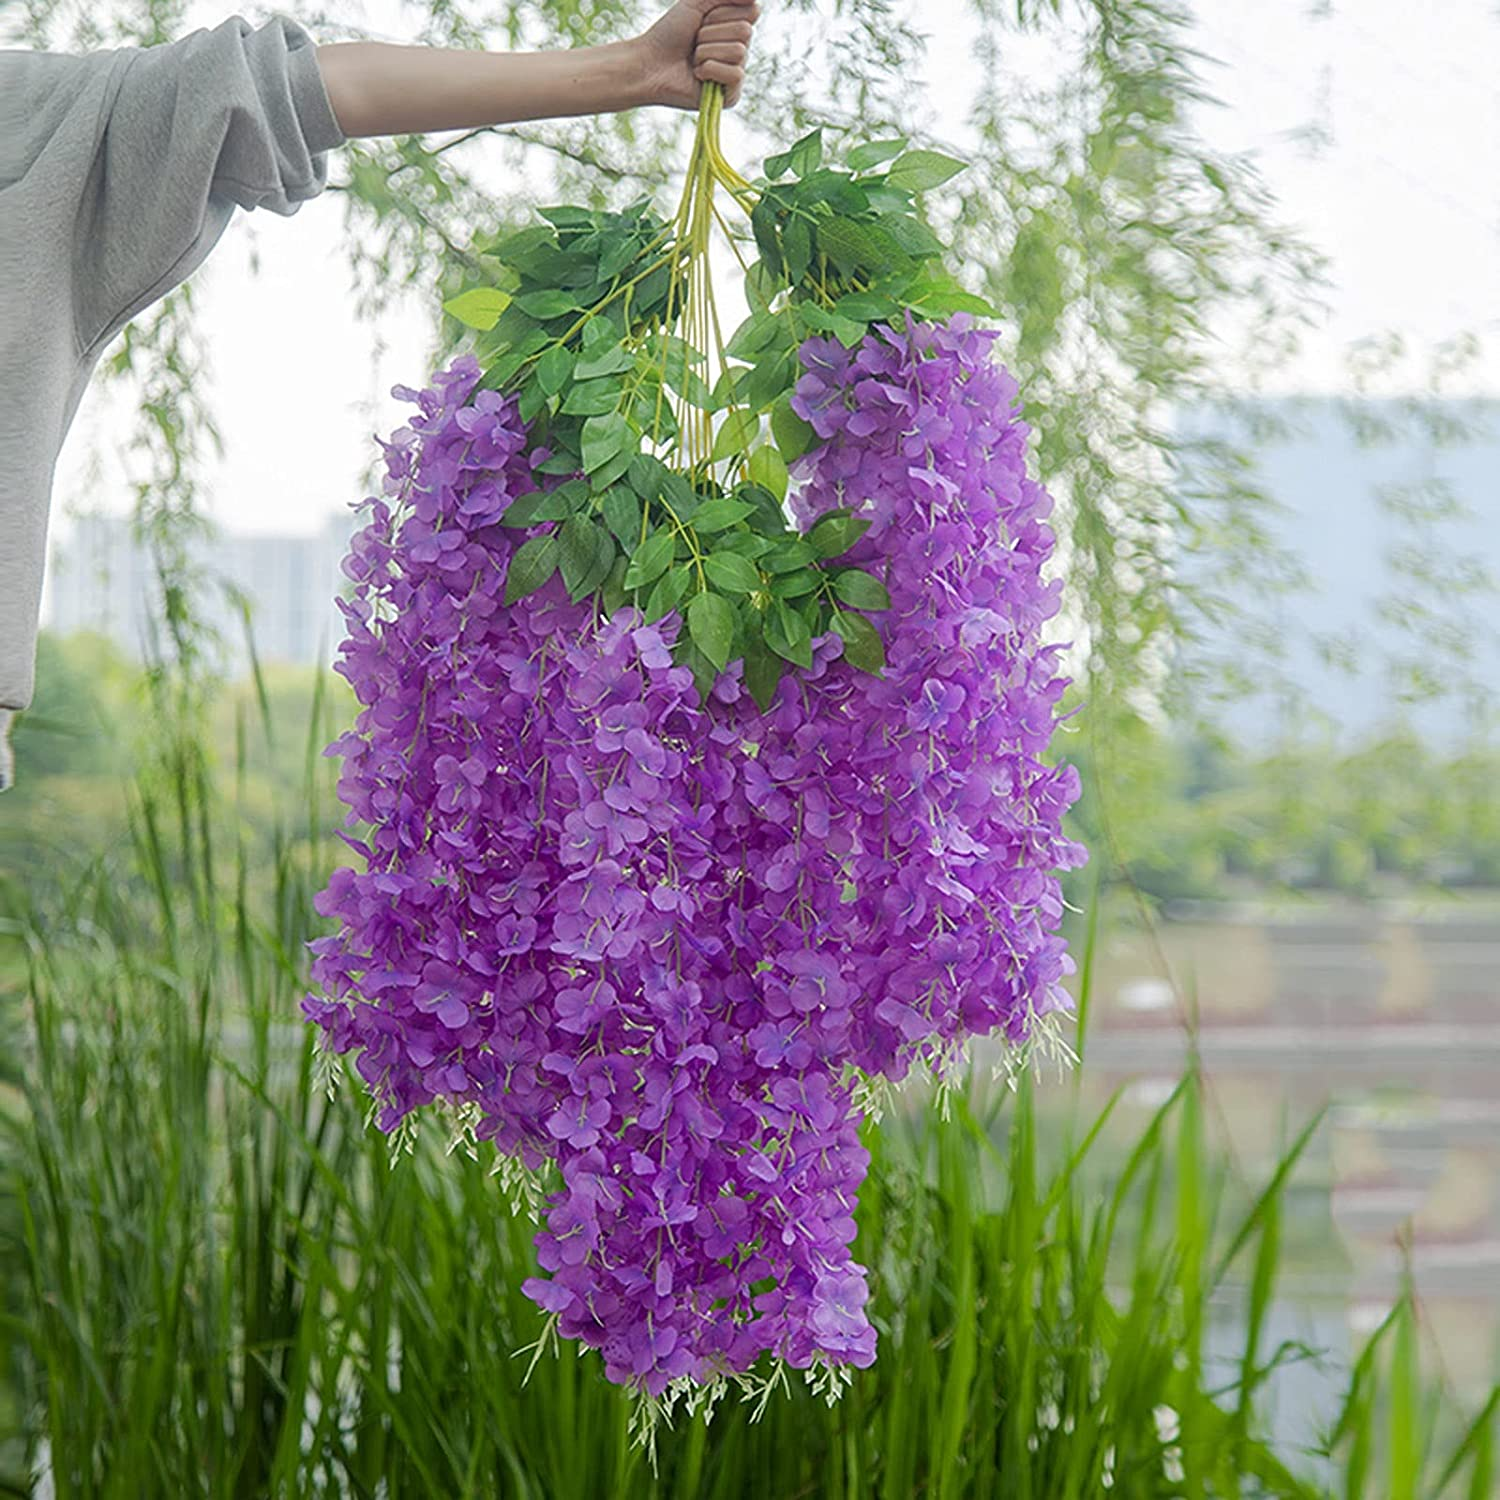 AILILI Fake Hanging Plants Challenge the lowest price of Japan ☆ Length X12 Pla Artificial San Antonio Mall Sticks 43in